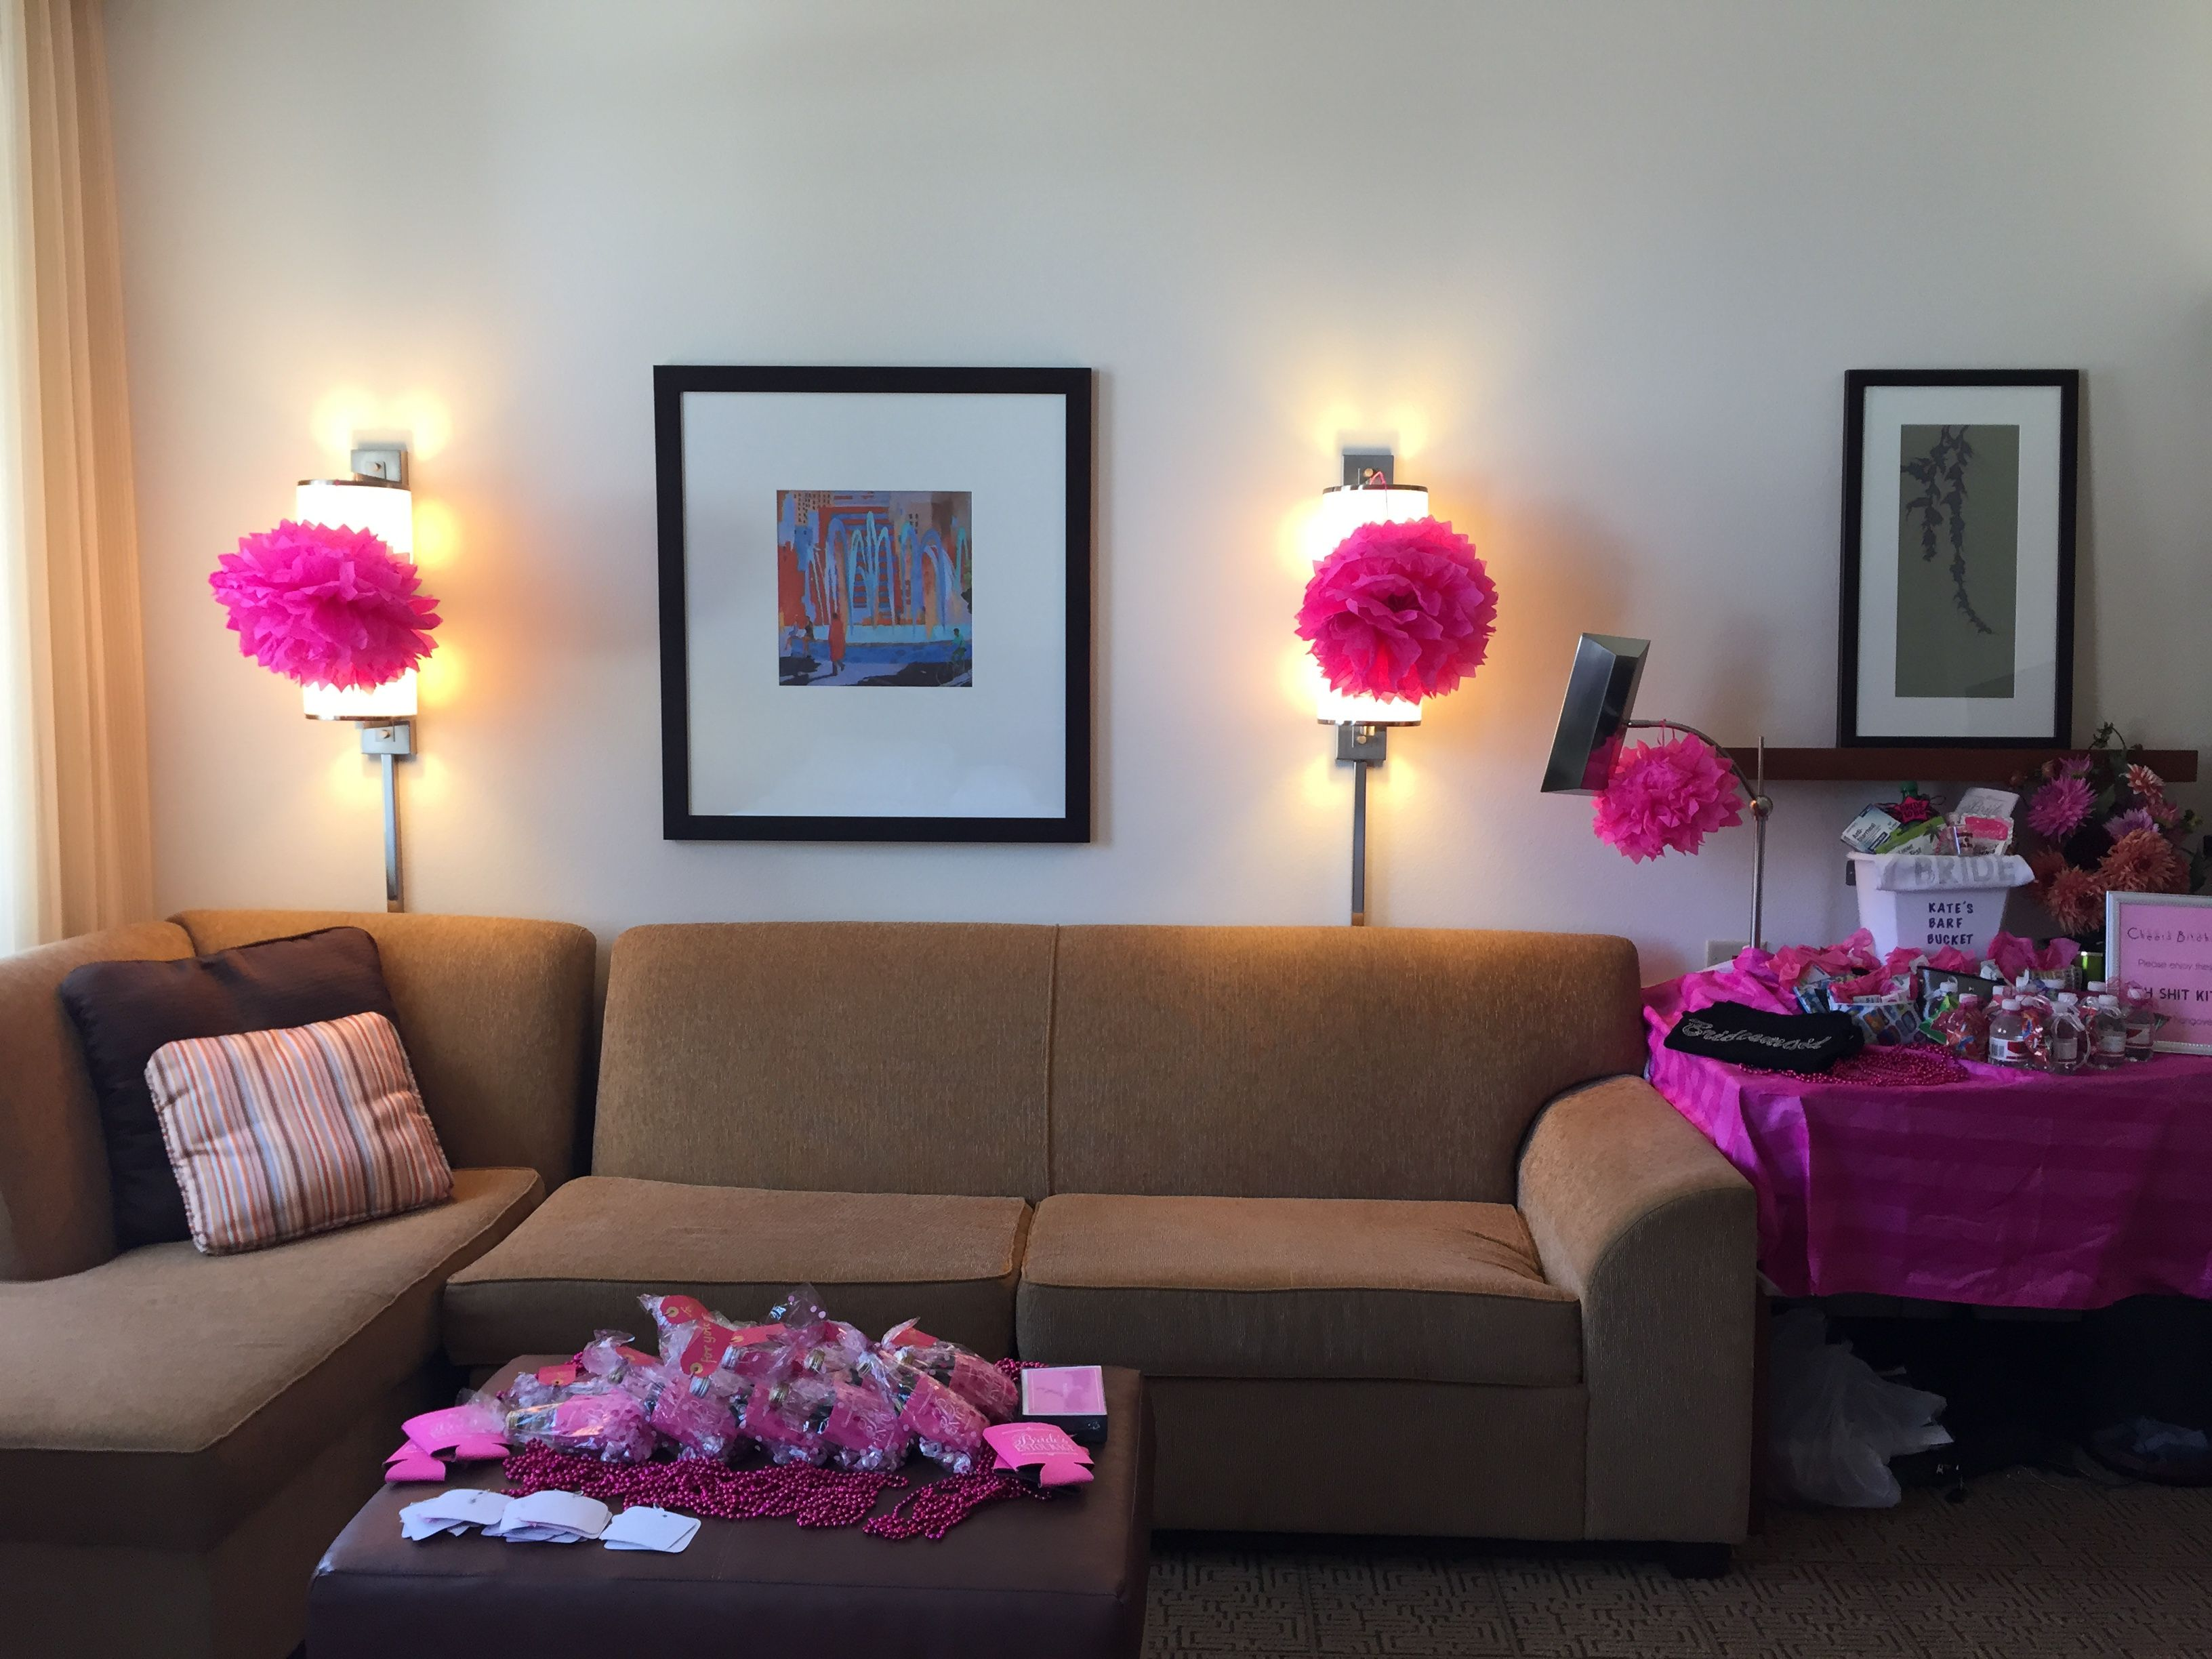 Decorating a hotel room for a Bridal Shower or Bachelorette Party ...